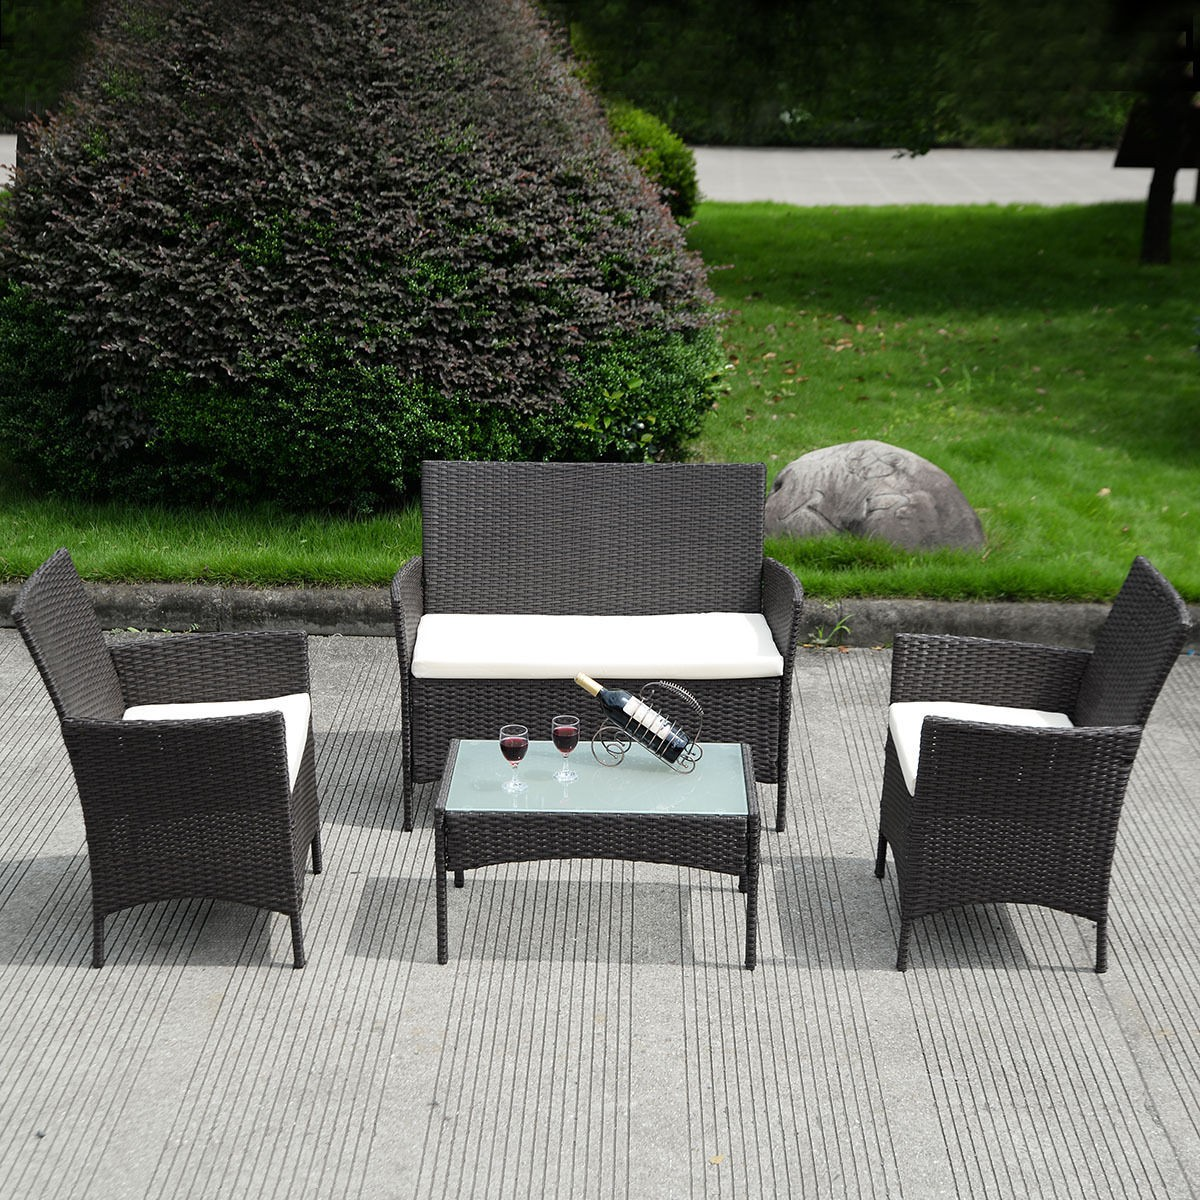 rattan garden chairs and table antique spindle rocking chair 4 pc patio wicker sofa set outdoor does not apply